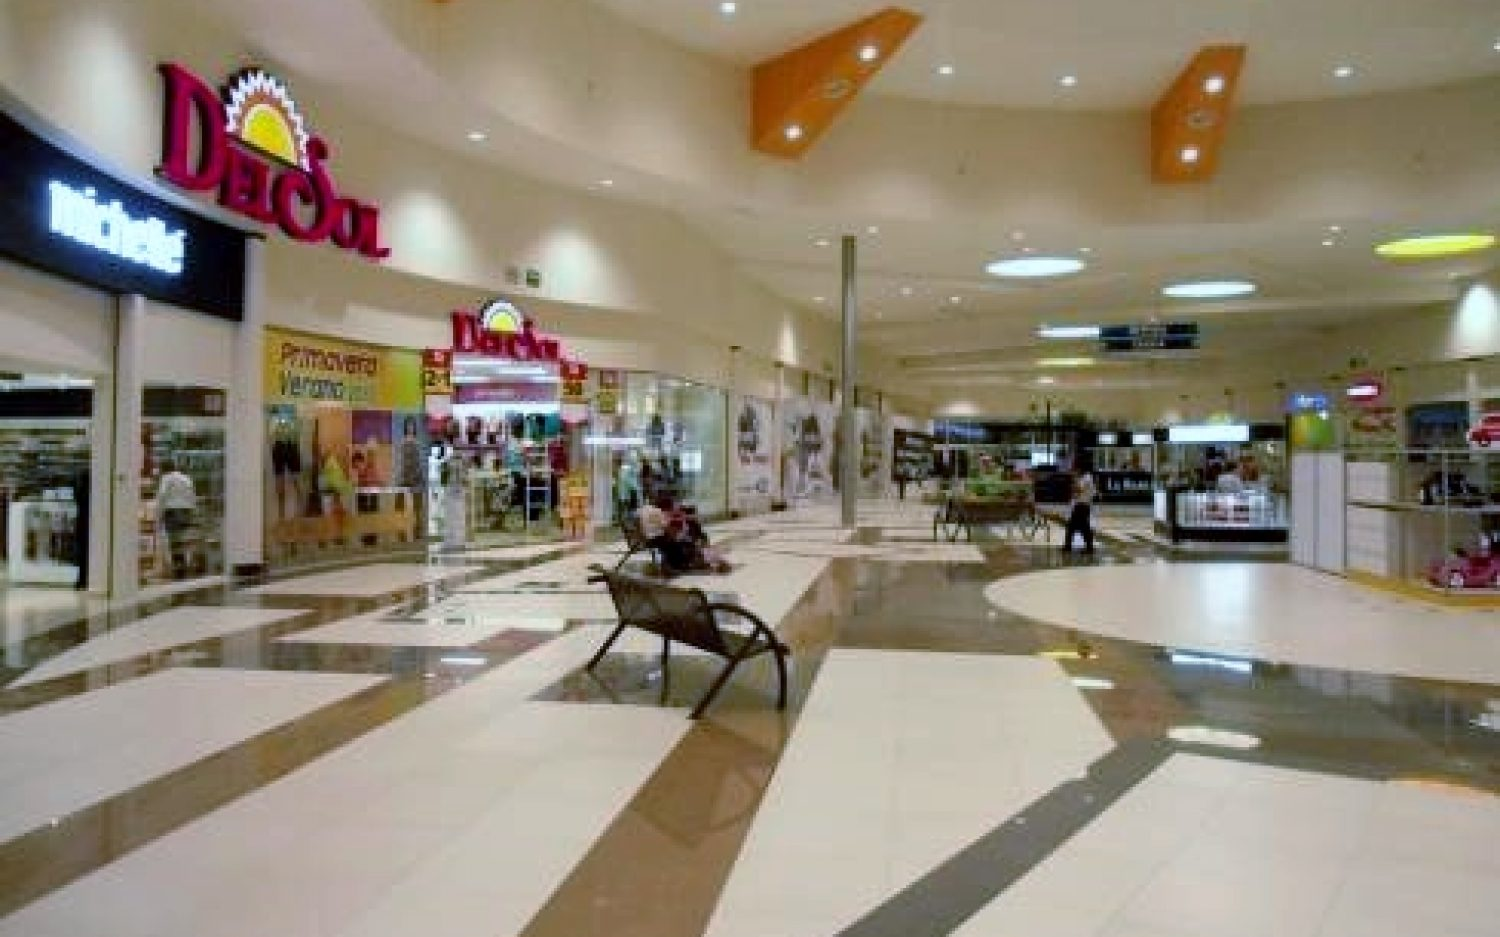 Co-Plaza Sendero Villahermosa (49)